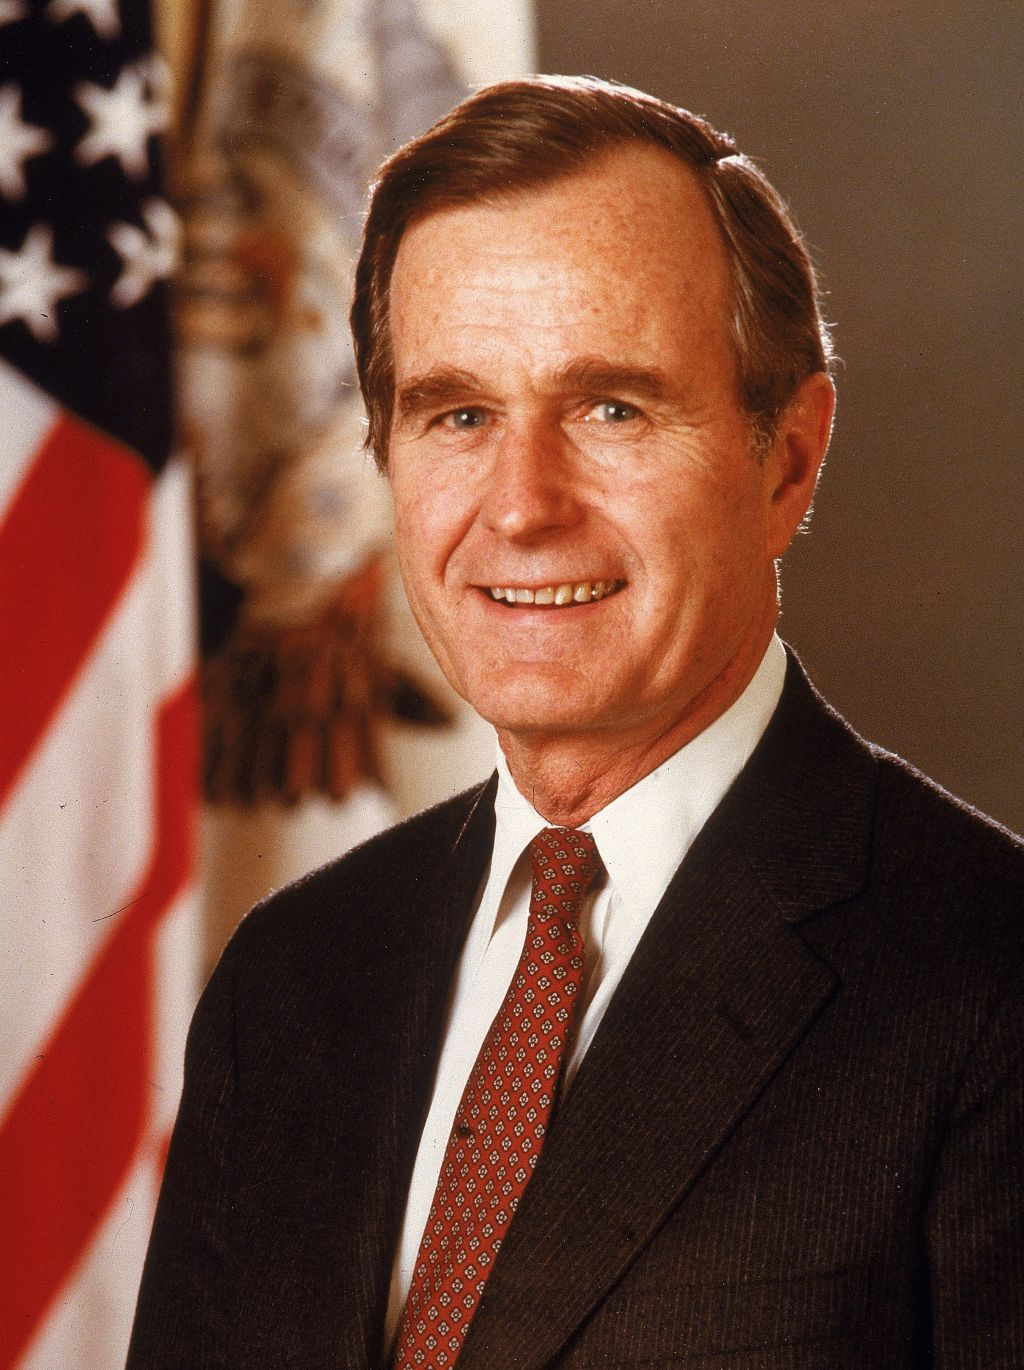 Porrtrait Of President George Bush, c. 1989.